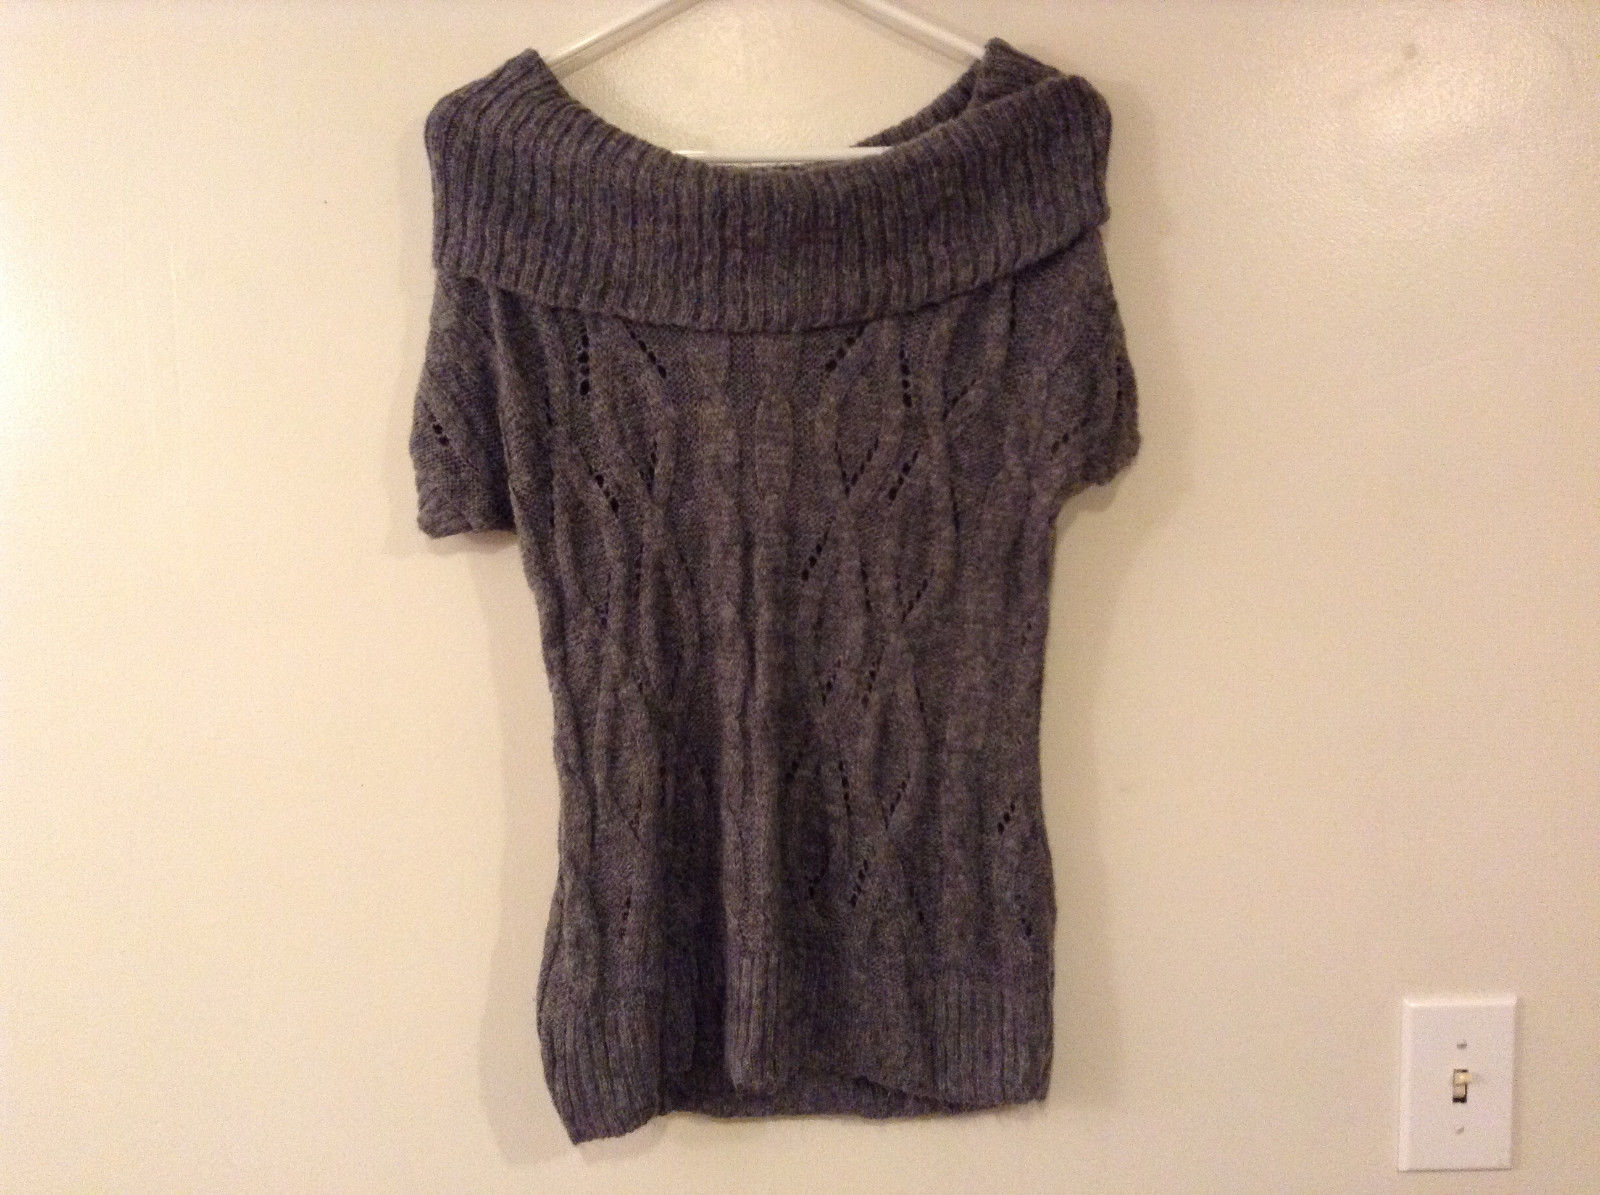 Charlotte Russe Women's Size M Sweater Gray Grey Off Shoulder Cable Knit Front